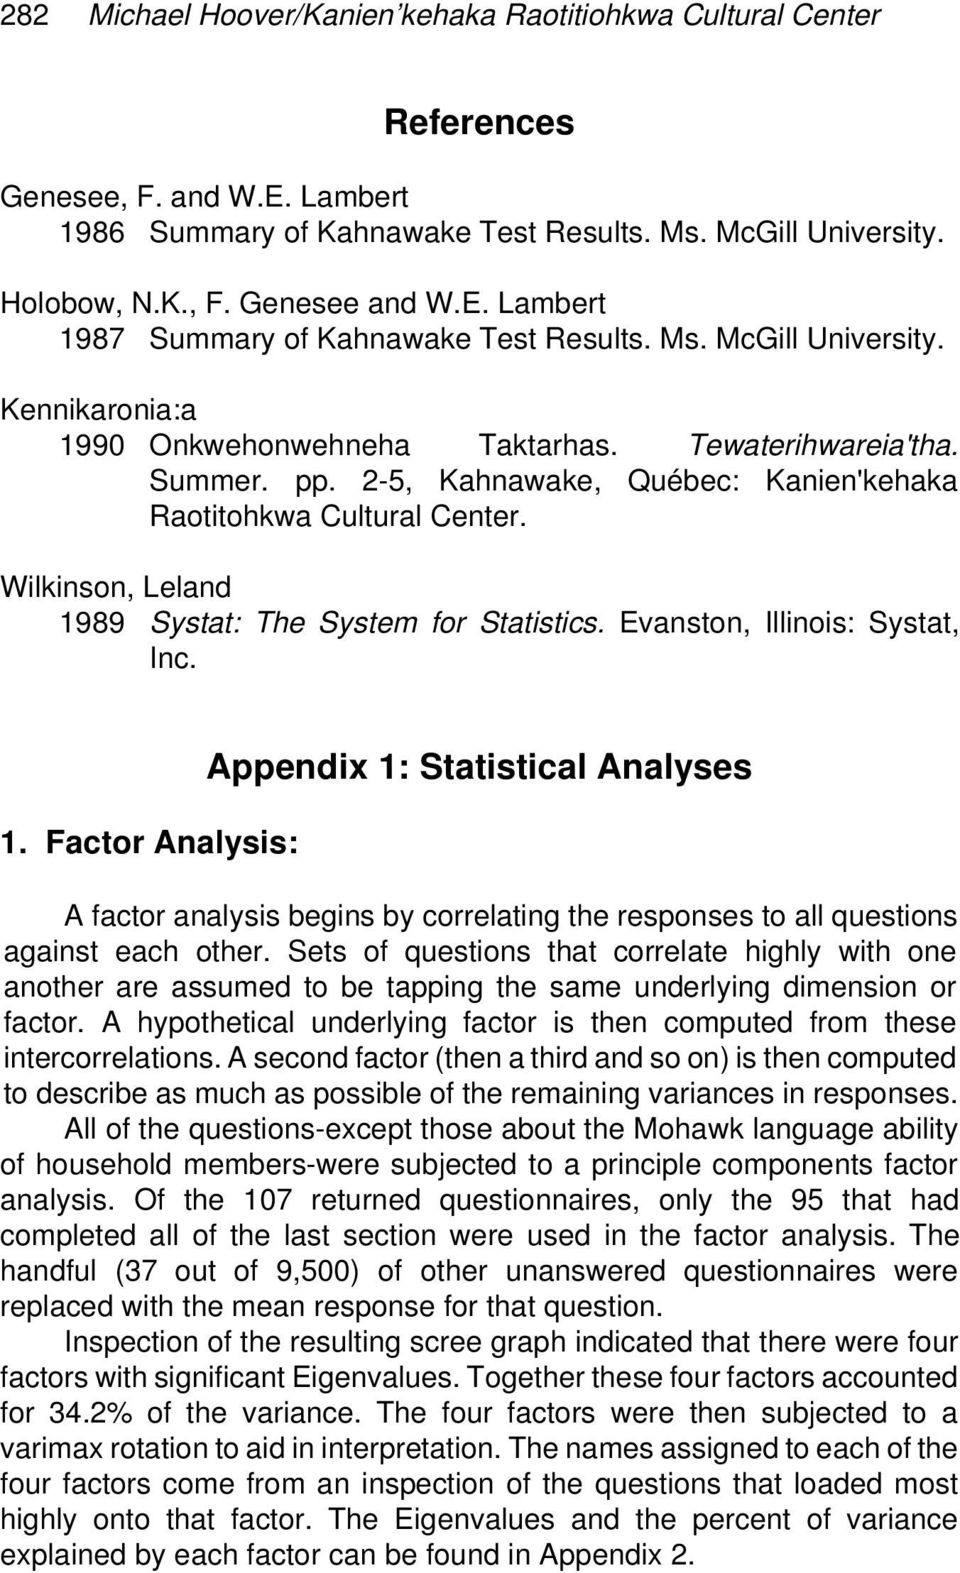 Wilkinson, Leland 1989 Systat: The System for Statistics. Evanston, Illinois: Systat, Inc. 1. Factor Analysis: Appendix 1: Statistical Analyses A factor analysis begins by correlating the responses to all questions against each other.